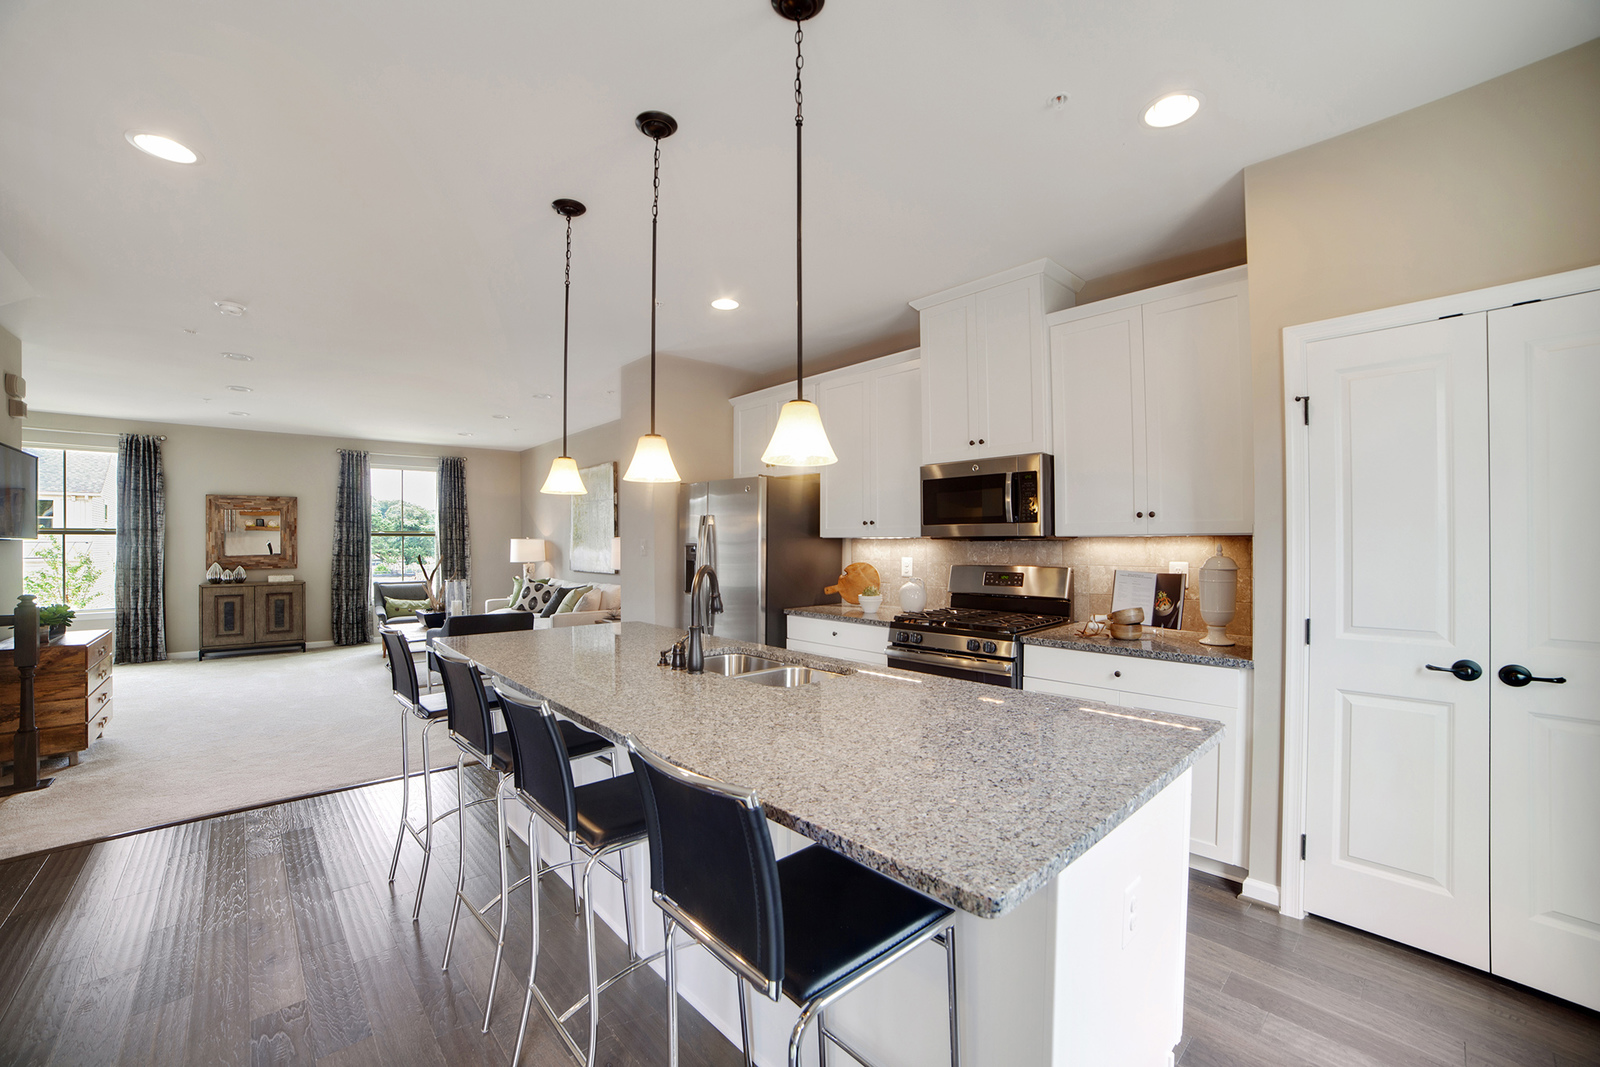 New Homes For Sale At Mccullers Walk Townes In Raleigh Nc Within